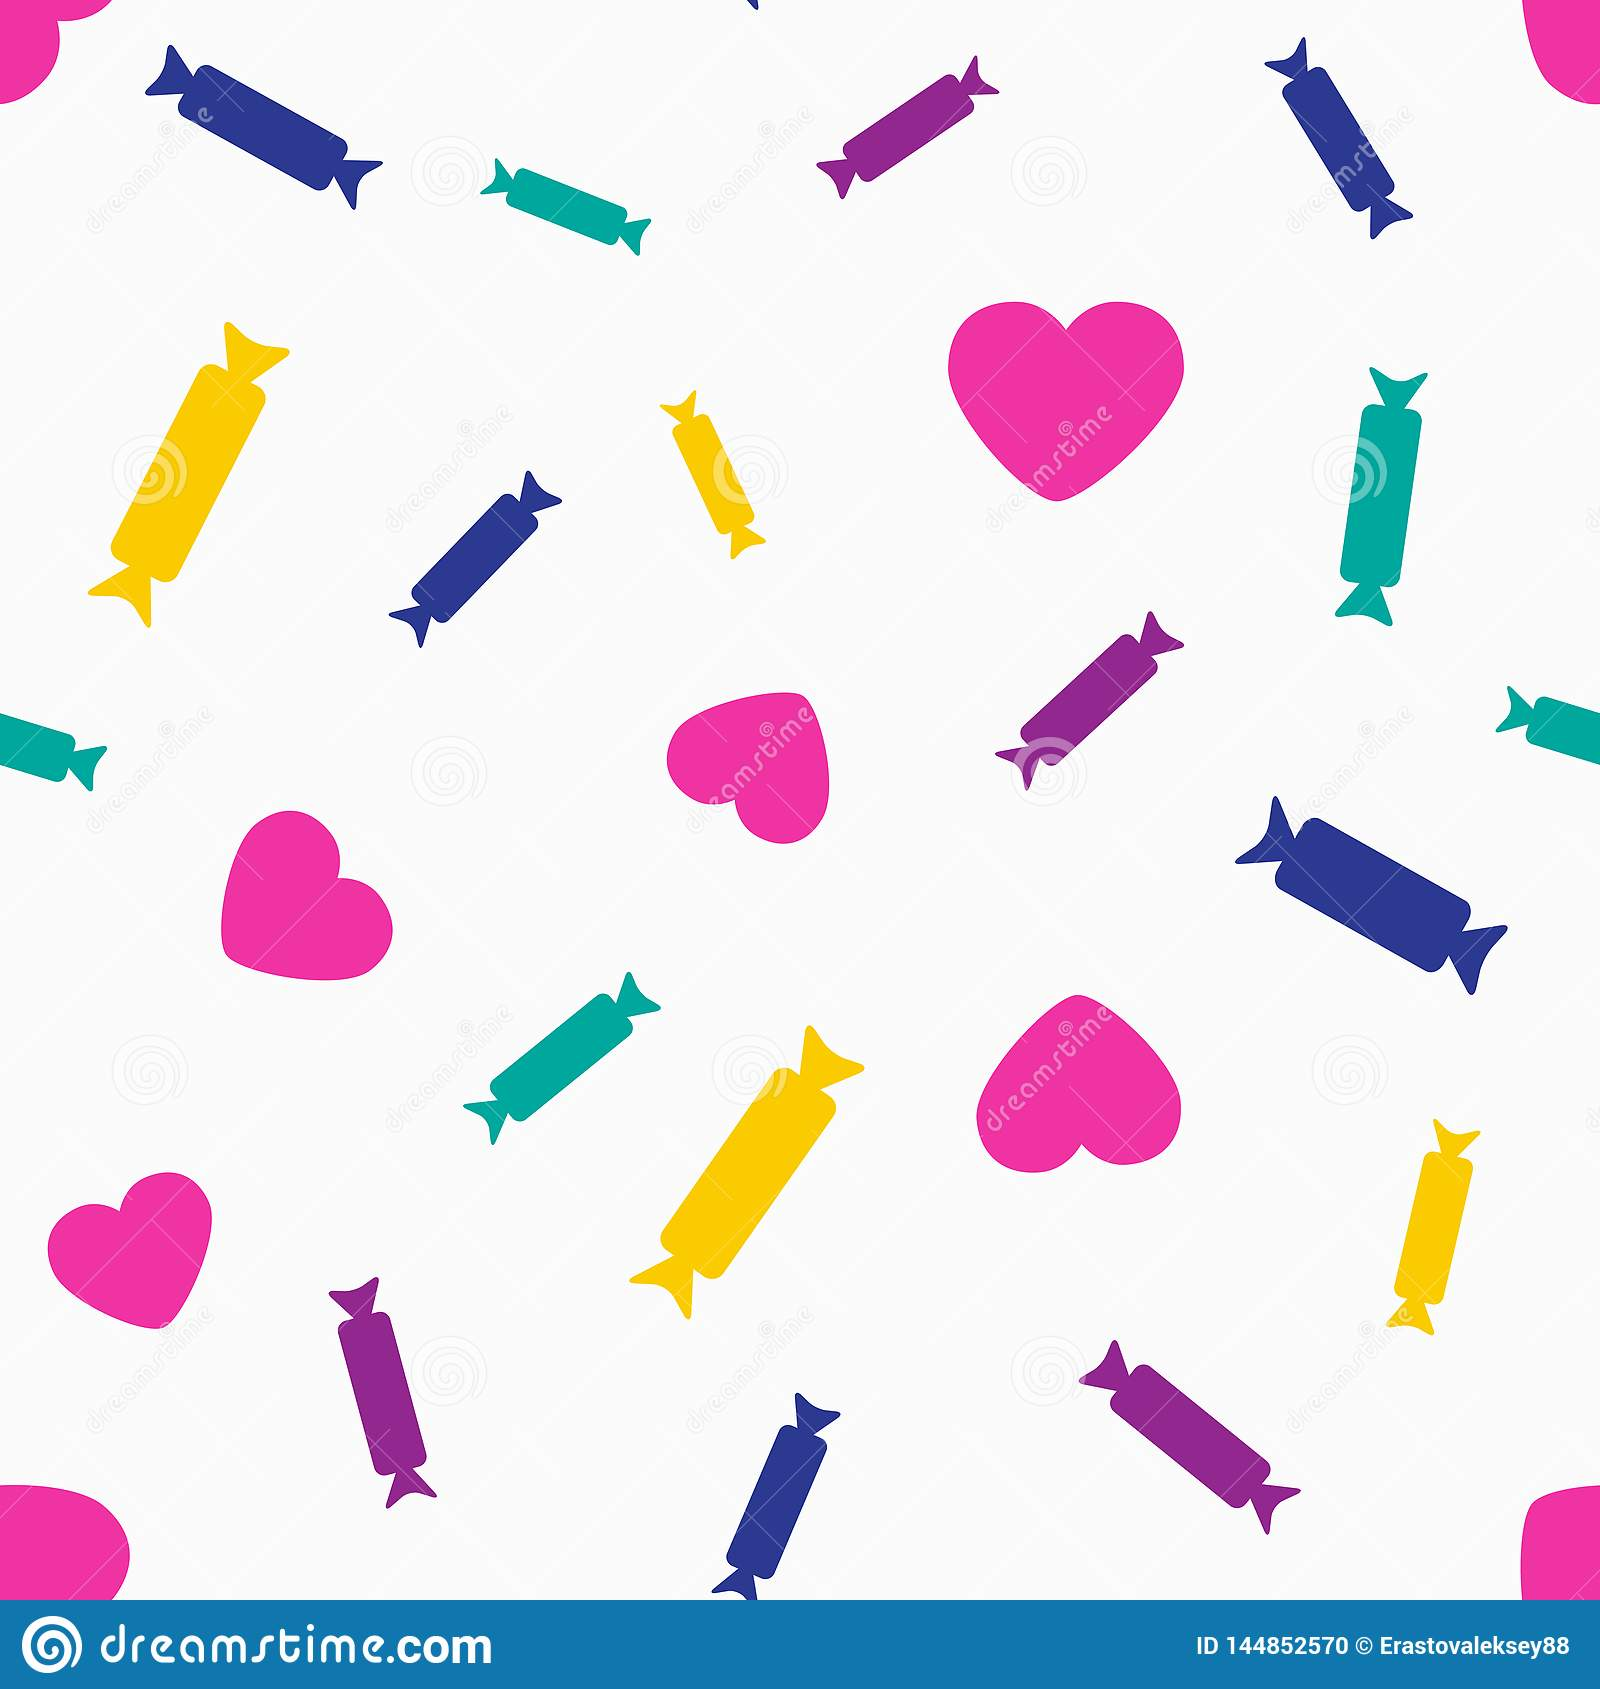 Colorful seamless pattern with hearts and candy. Vector illustration.